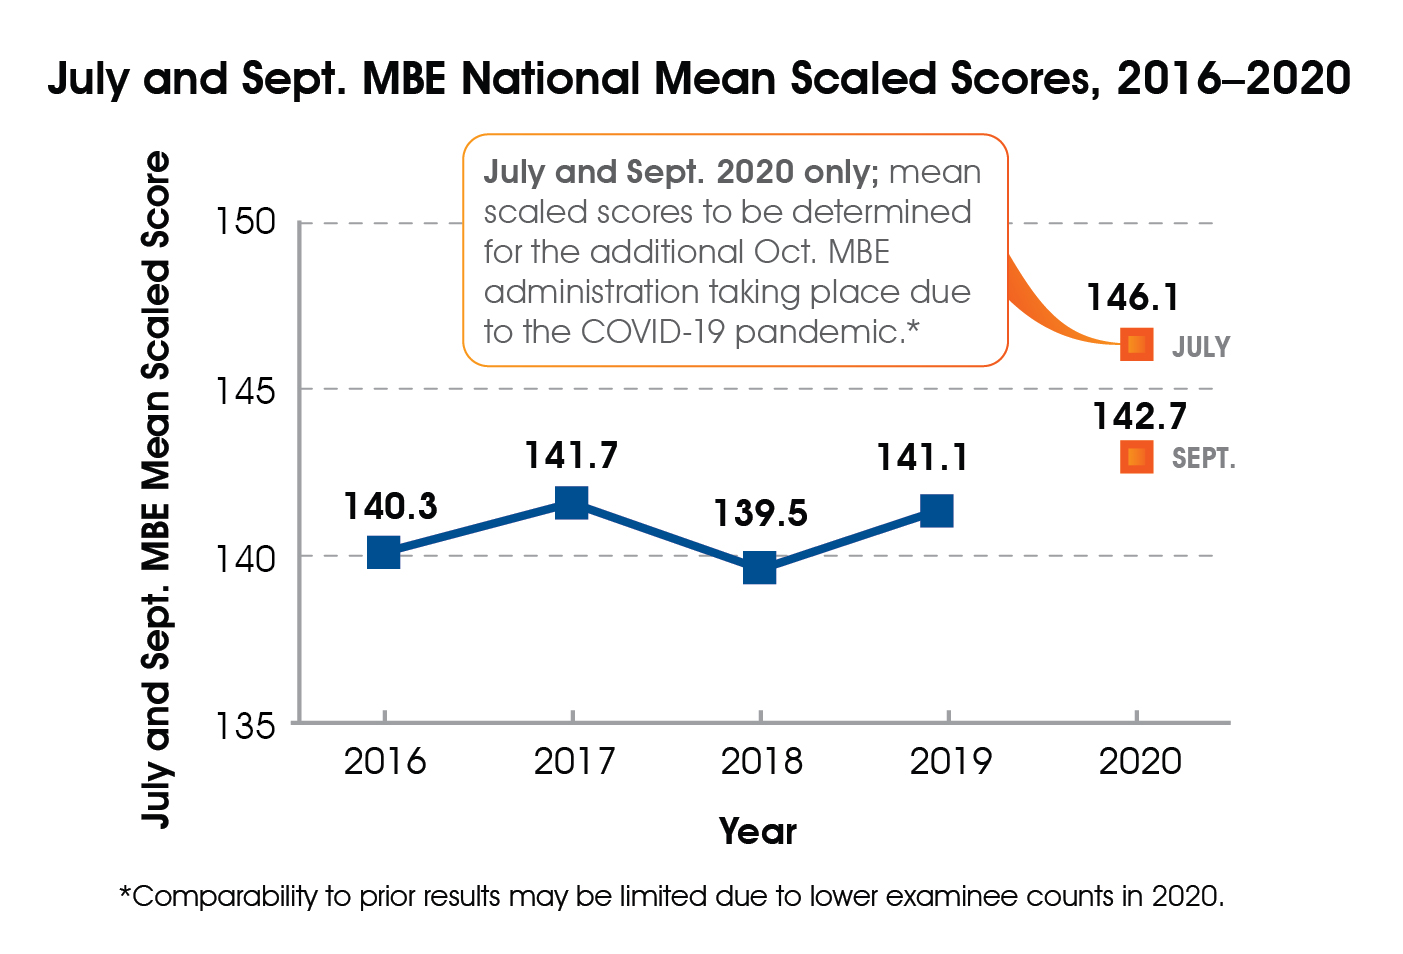 Line graph of July MBE national mean scaled scores, 2016-2020. 2016 = 140.3; 2017 = 141.7; 2018 = 139.5; 2019 = 141.1; 2020 = 146.1. Mean scaled scores for September 2020 MBE national mean scaled scores = 142.7 and October exams also taking place because of the COVID-19 pandemic have not been determined yet.